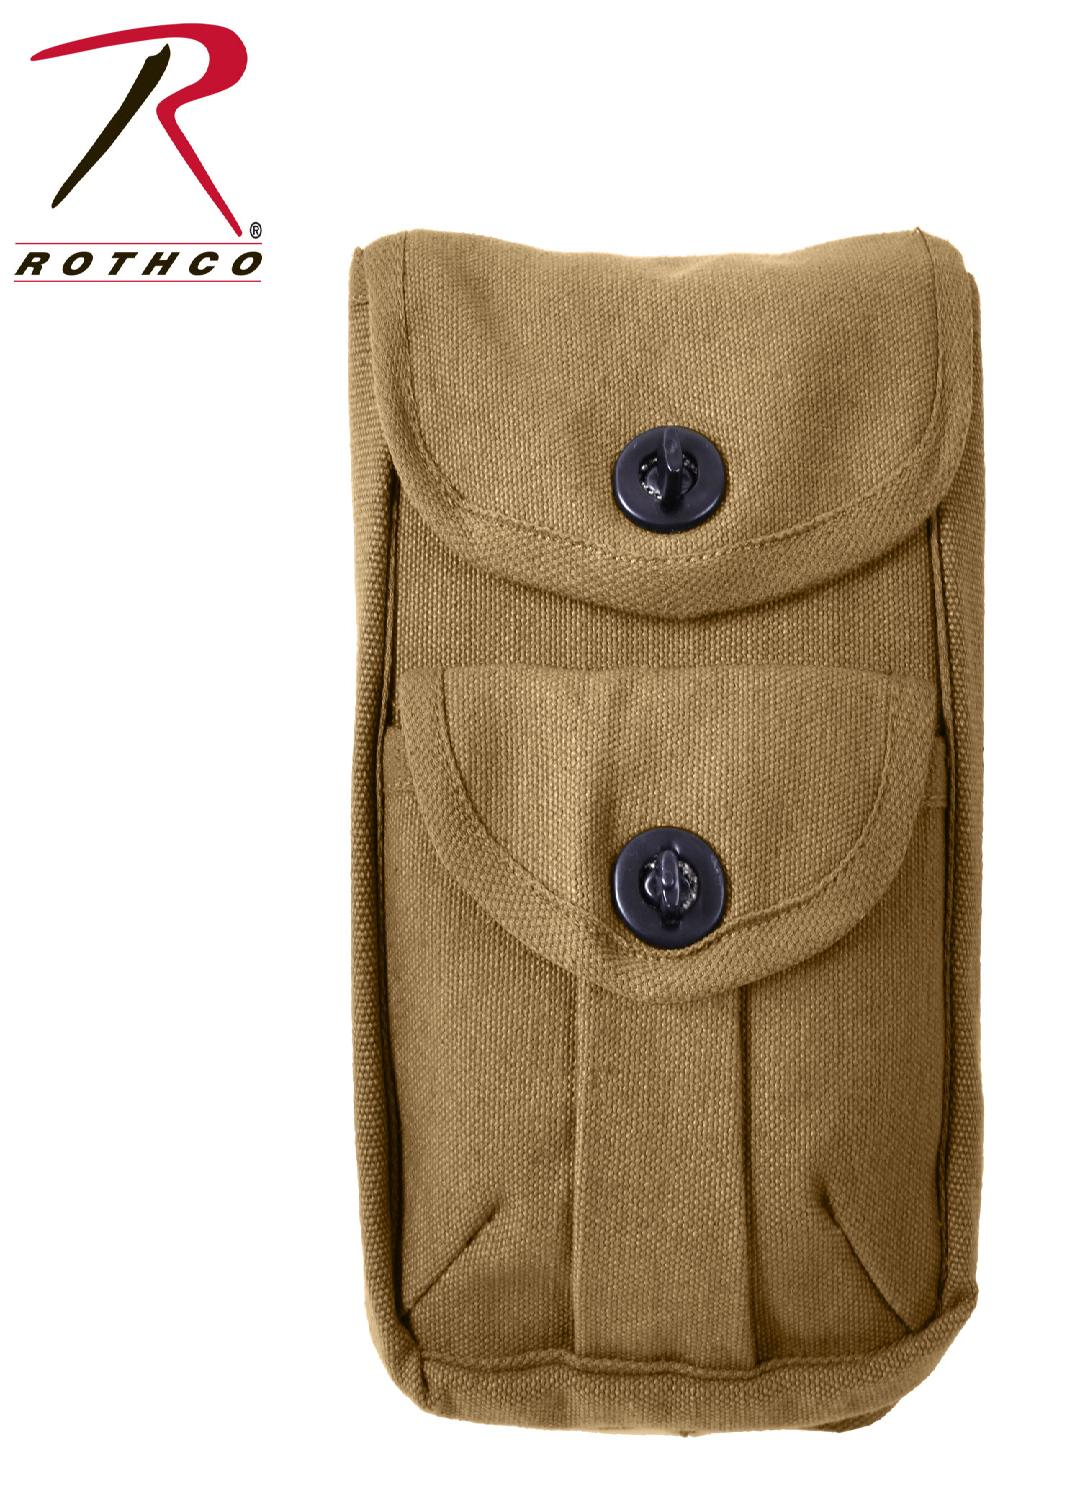 Rothco Ammo Pouches - Coyote Brown